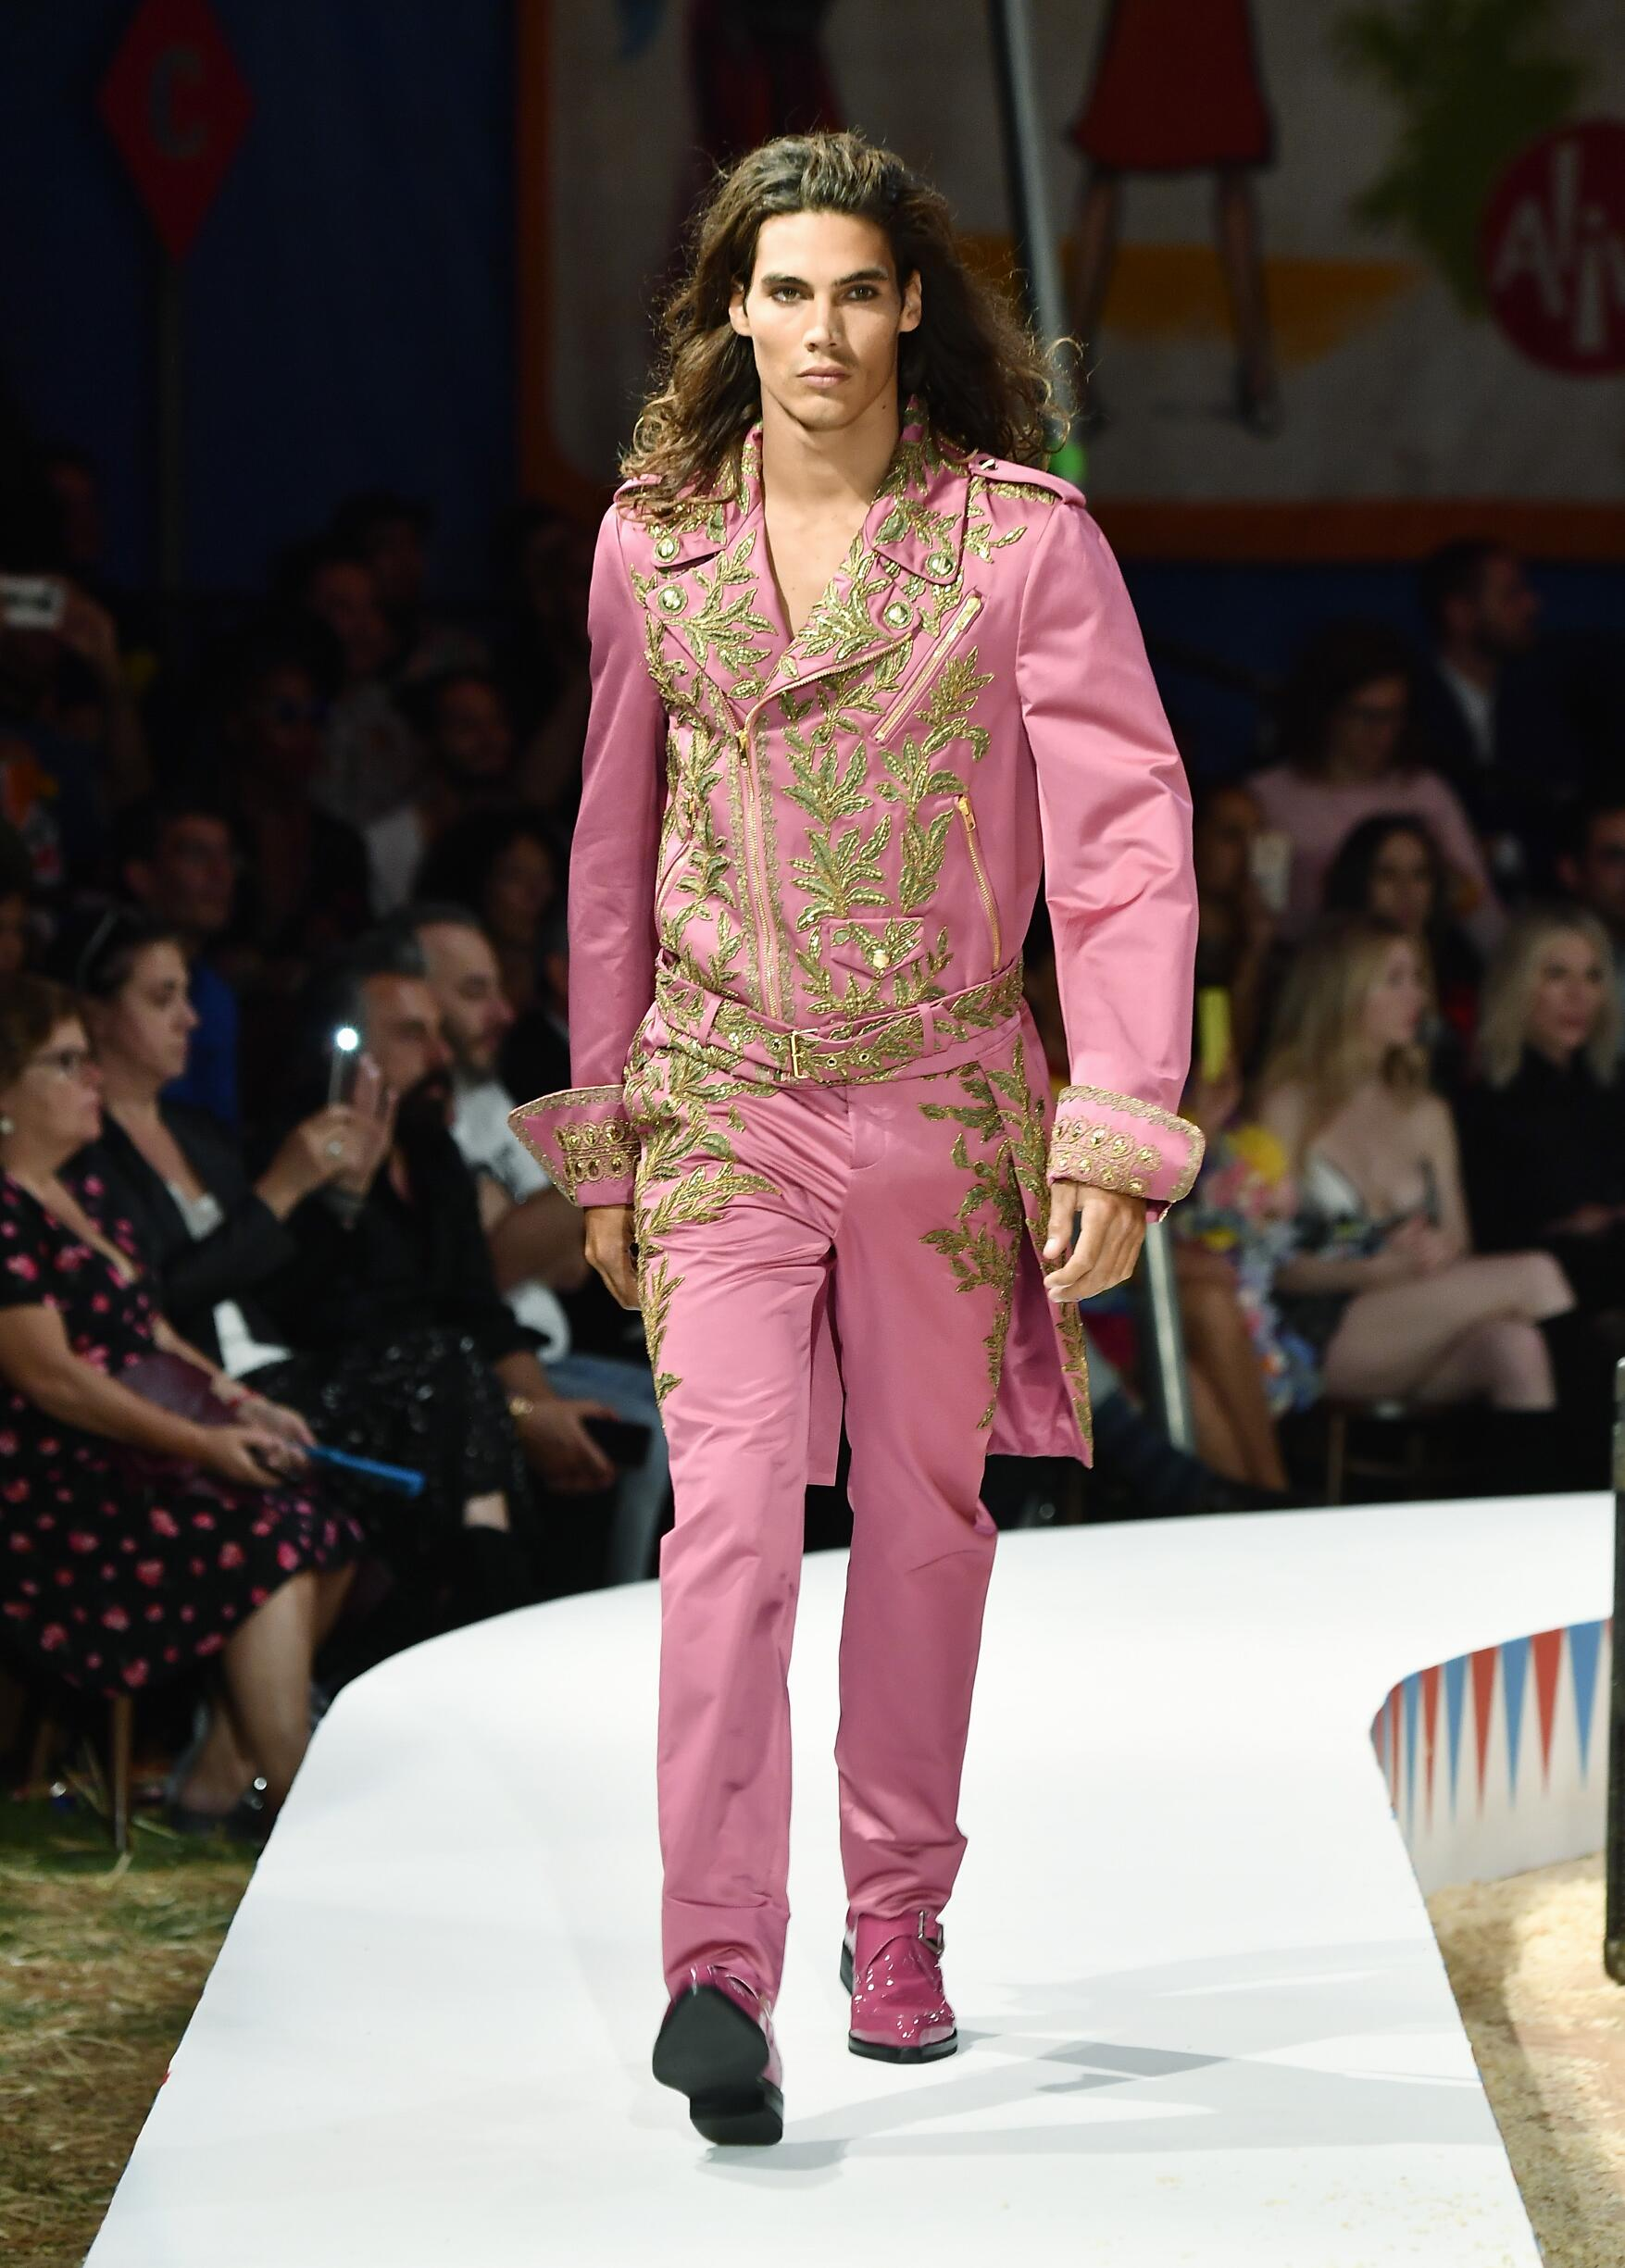 Moschino Spring Summer 2019 Menswear and Women's Resort Collection Look 55 Los Angeles